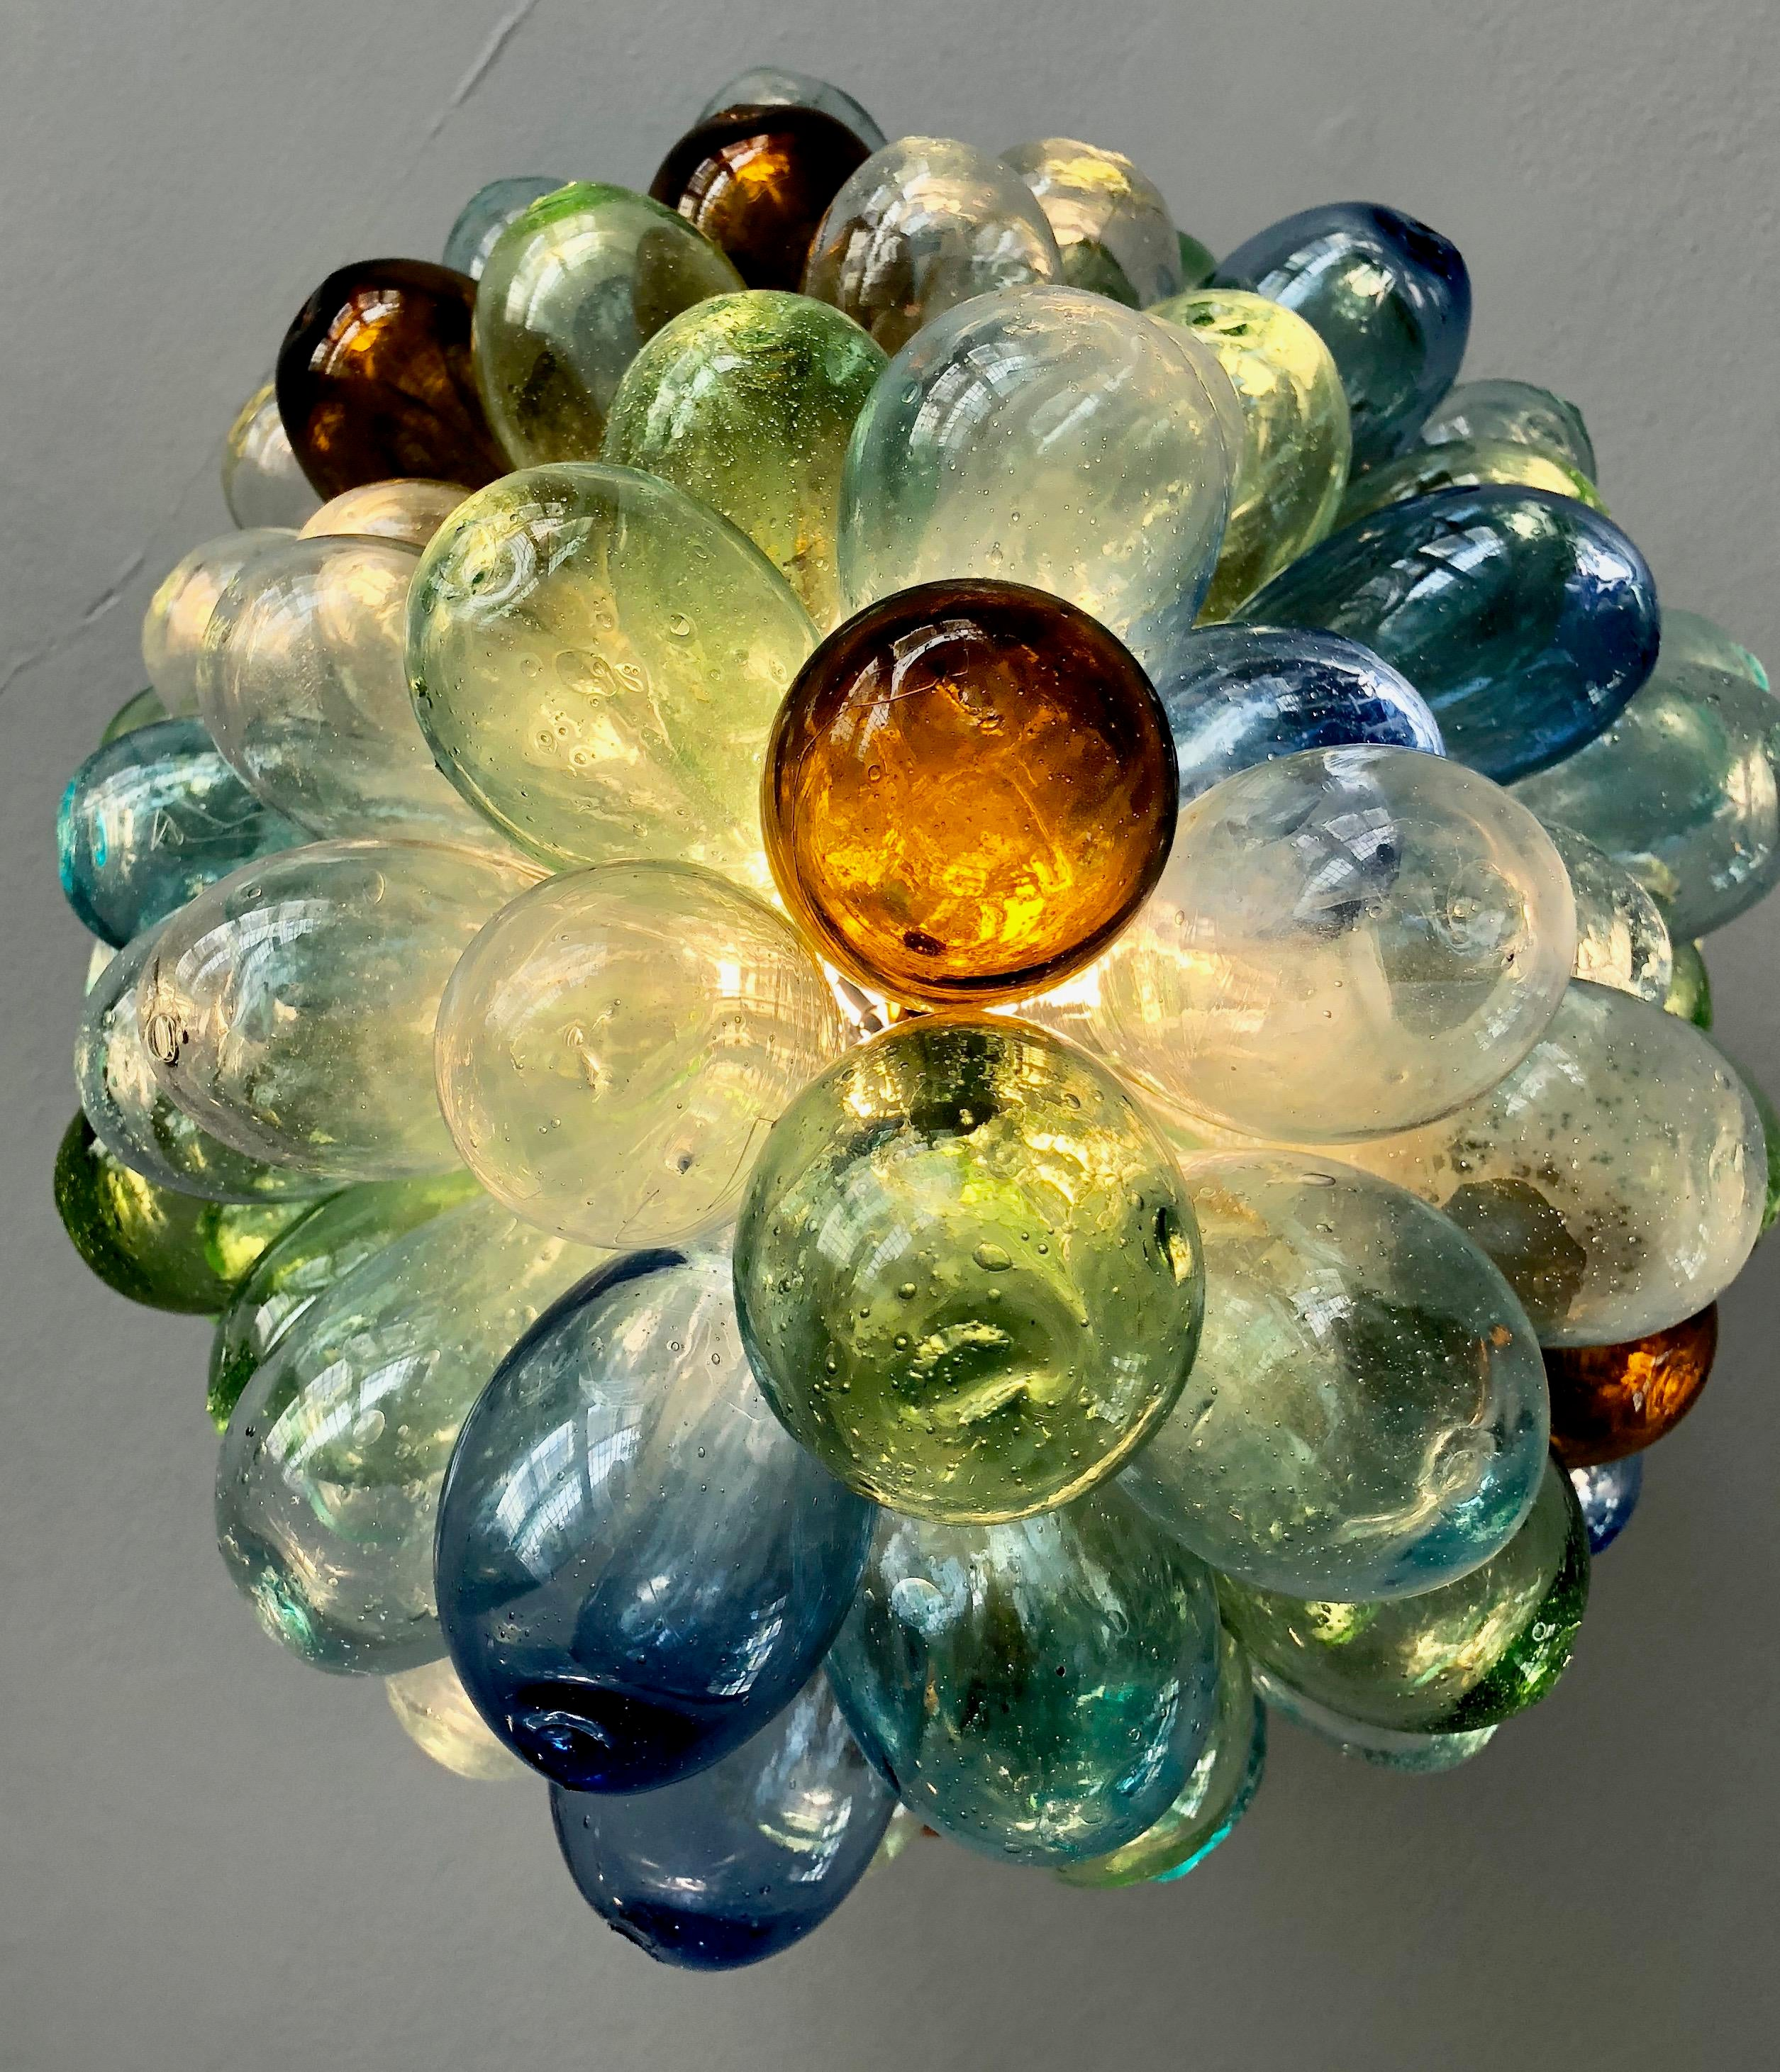 Pendant Multicolored Handblown Glass Light Fixture For Sale In Los Angeles Image Of Chairish Multicolored Handblown Glass Light Fixture Chairish